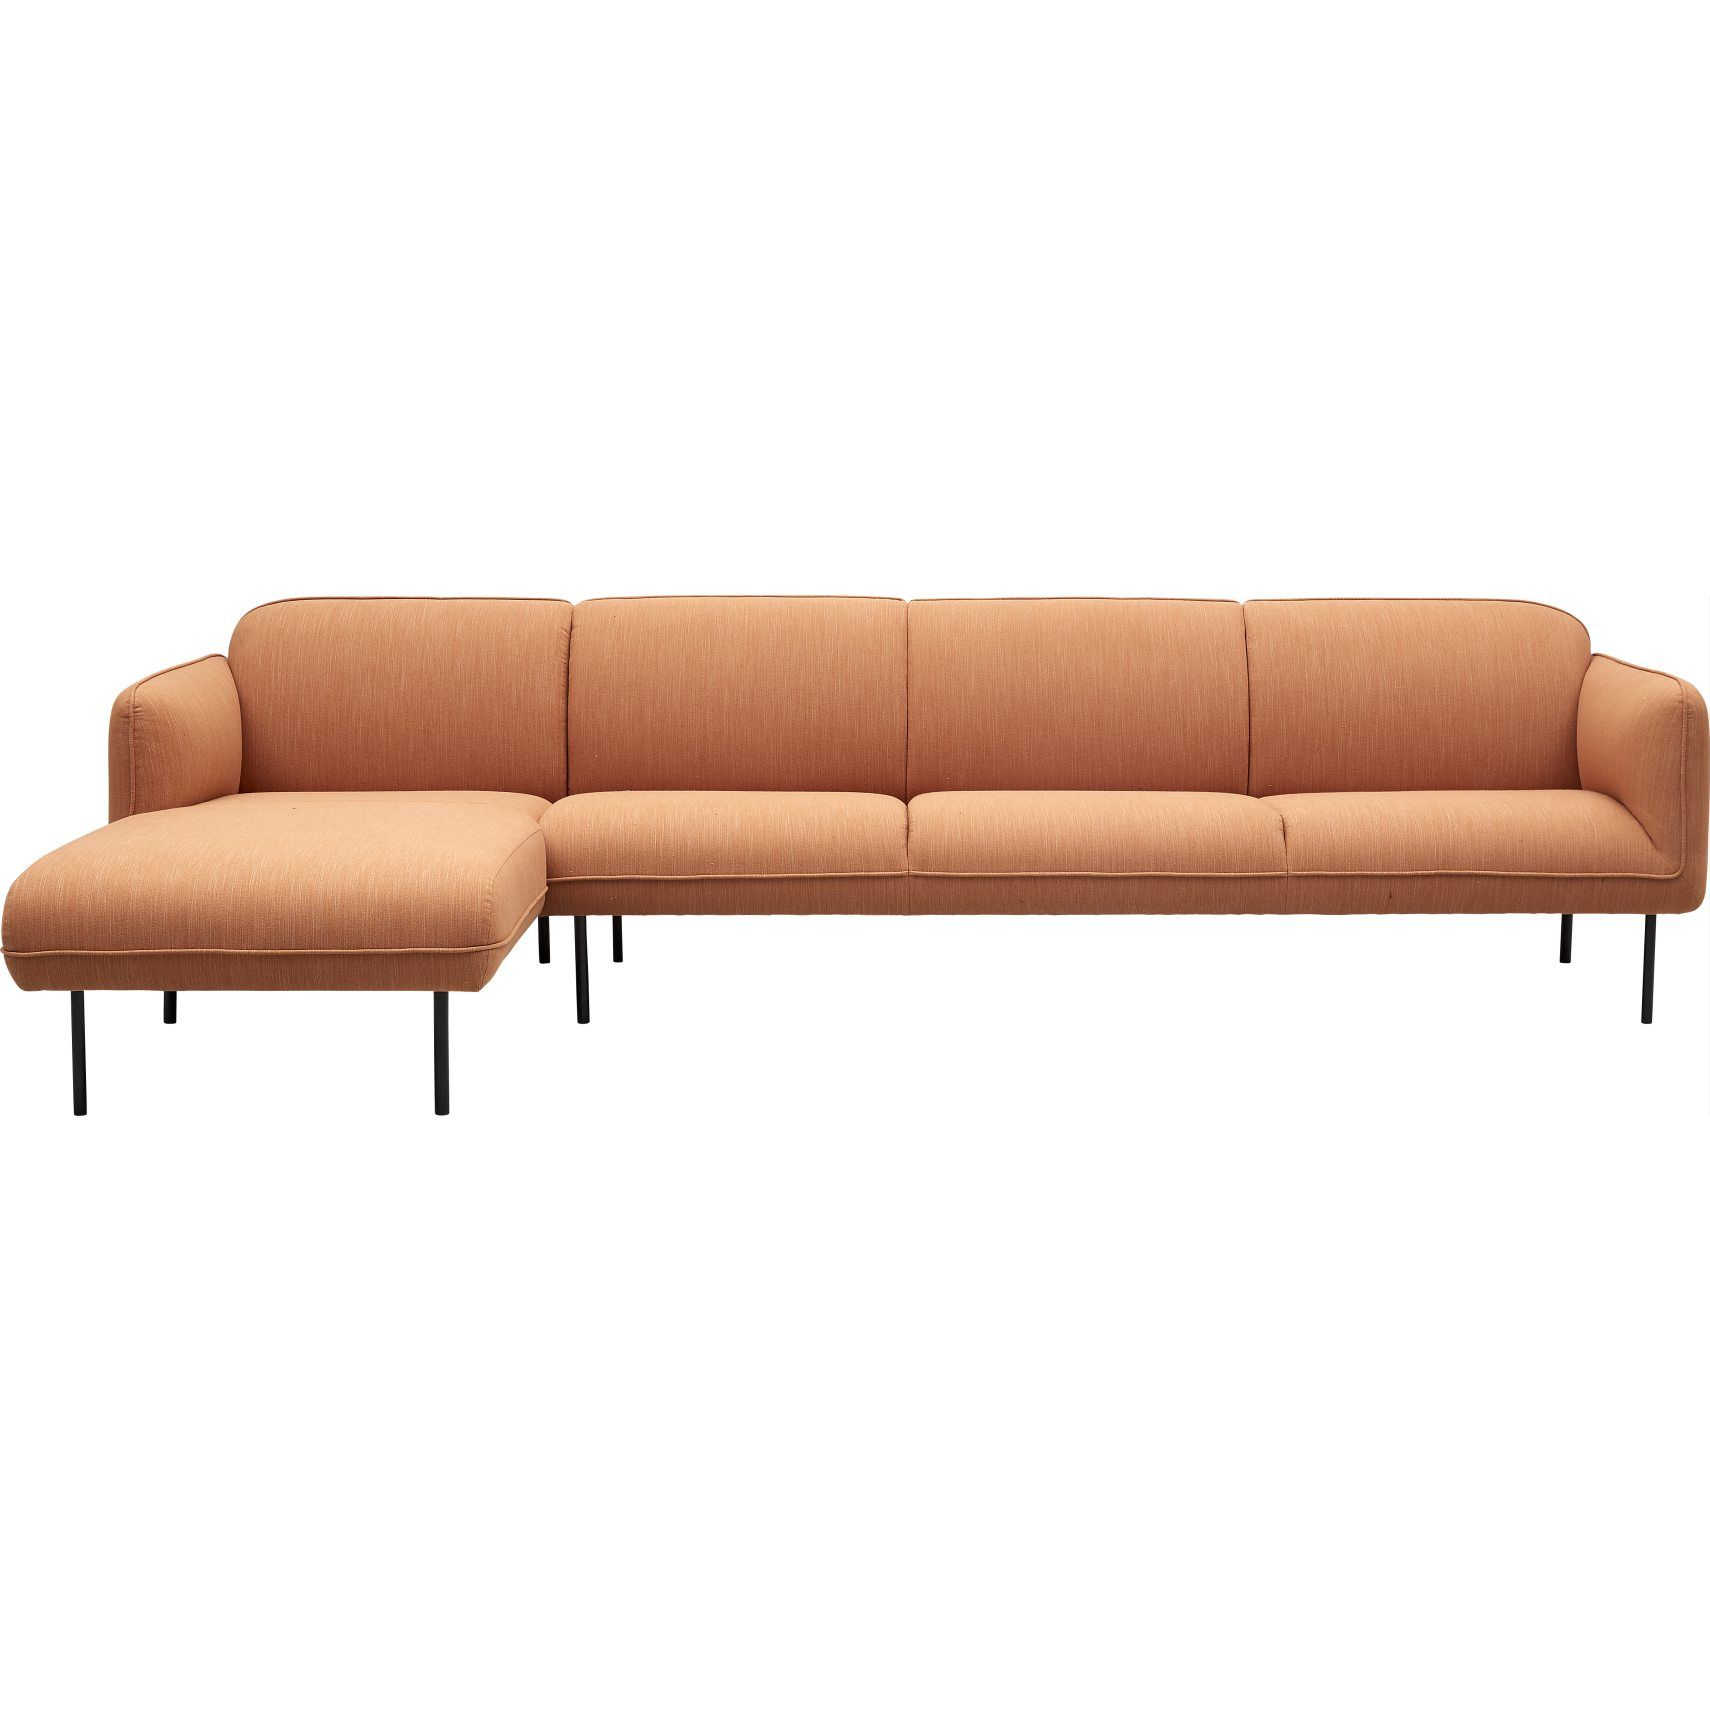 1 personers sofa med chaiselong wooden garden uk pump 9 999 tilbud ilva